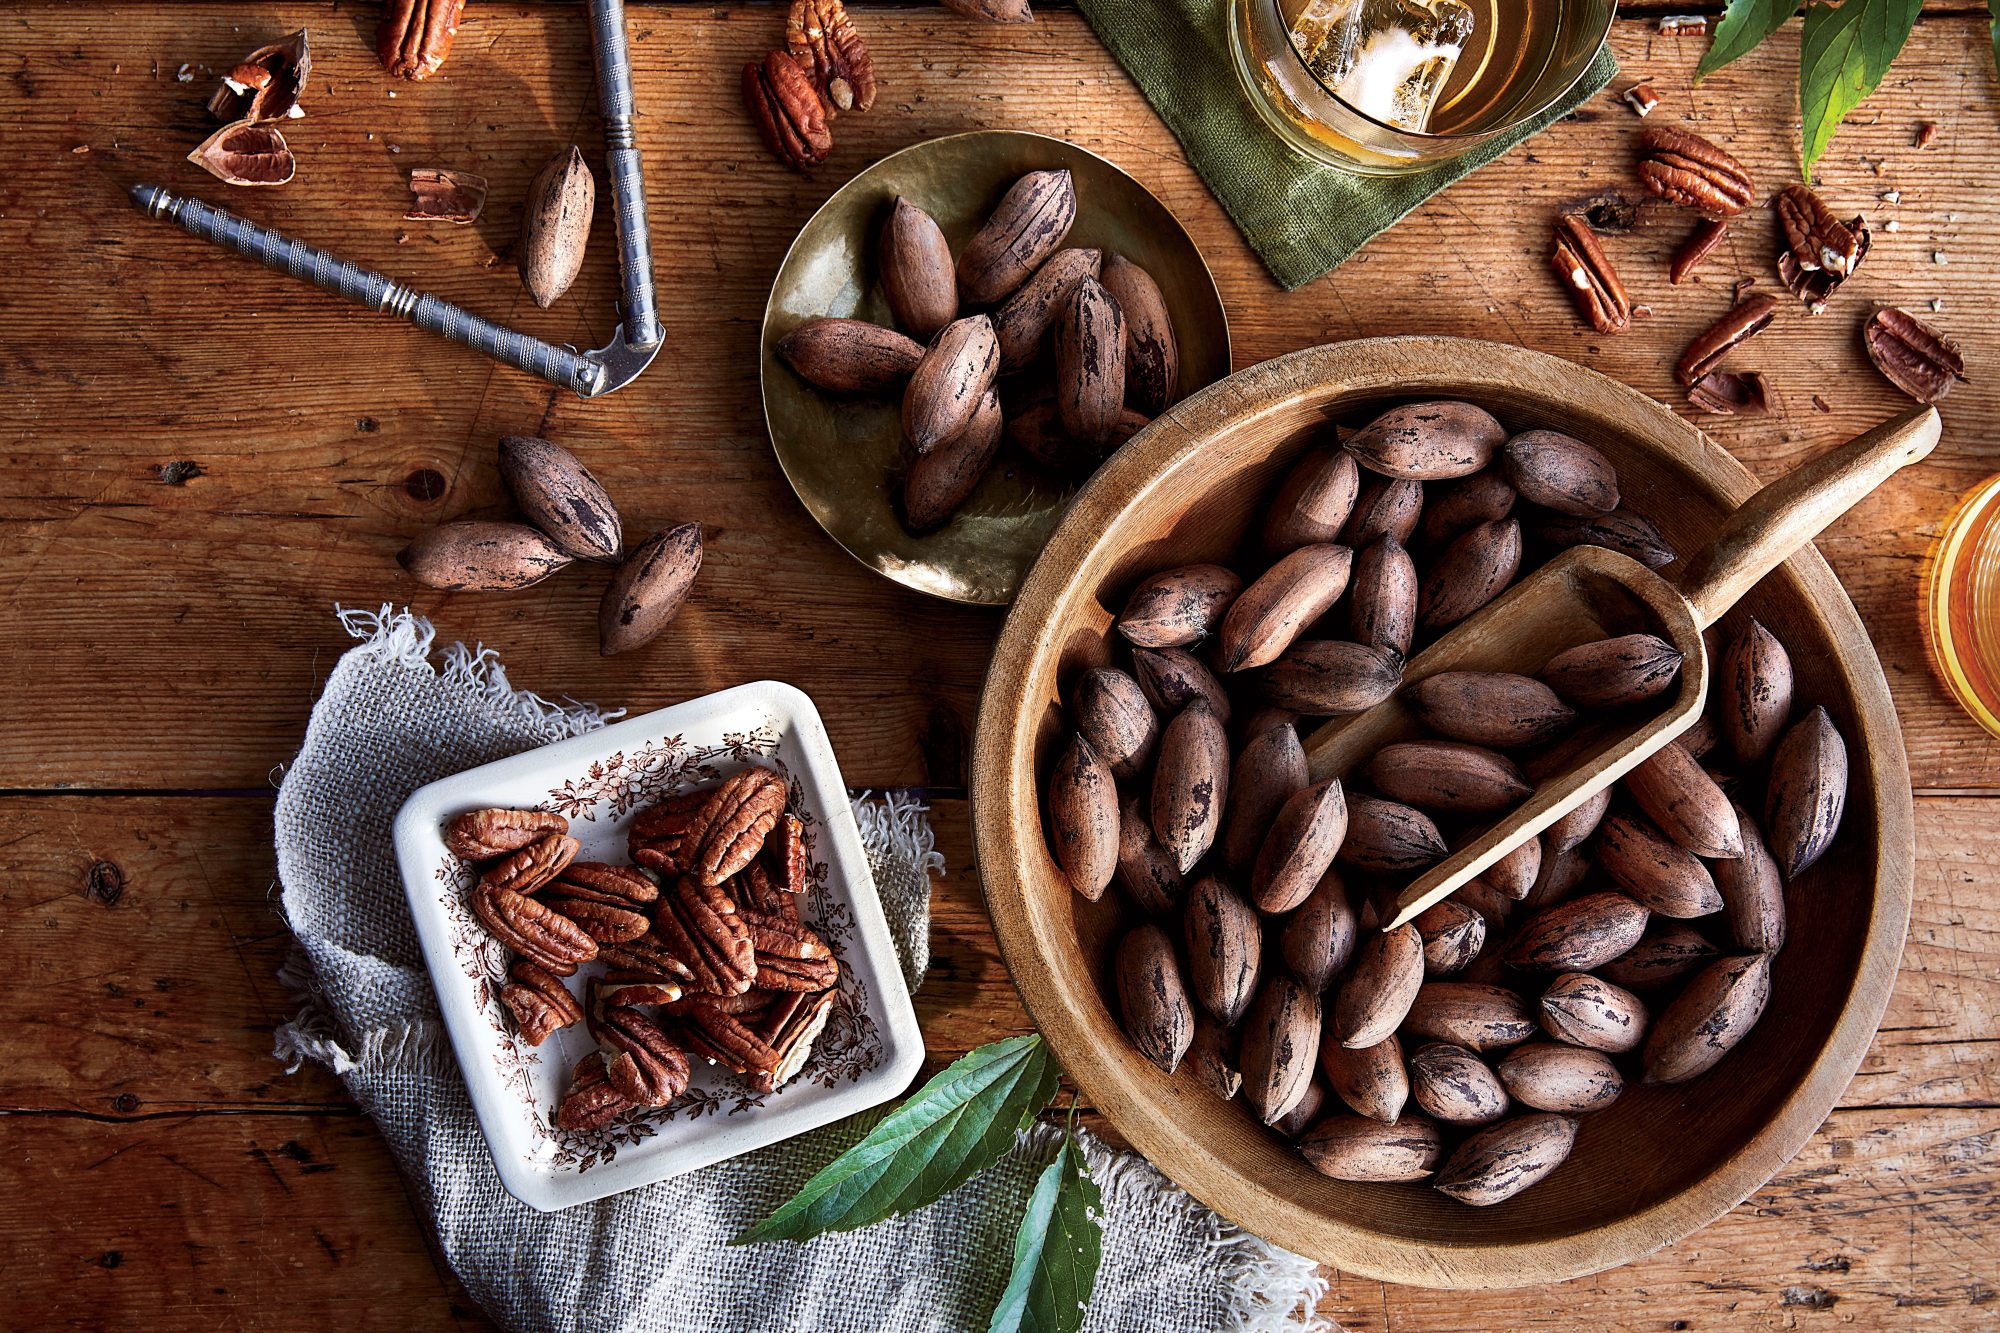 Bowl of Pecans Shelled and Unshelled